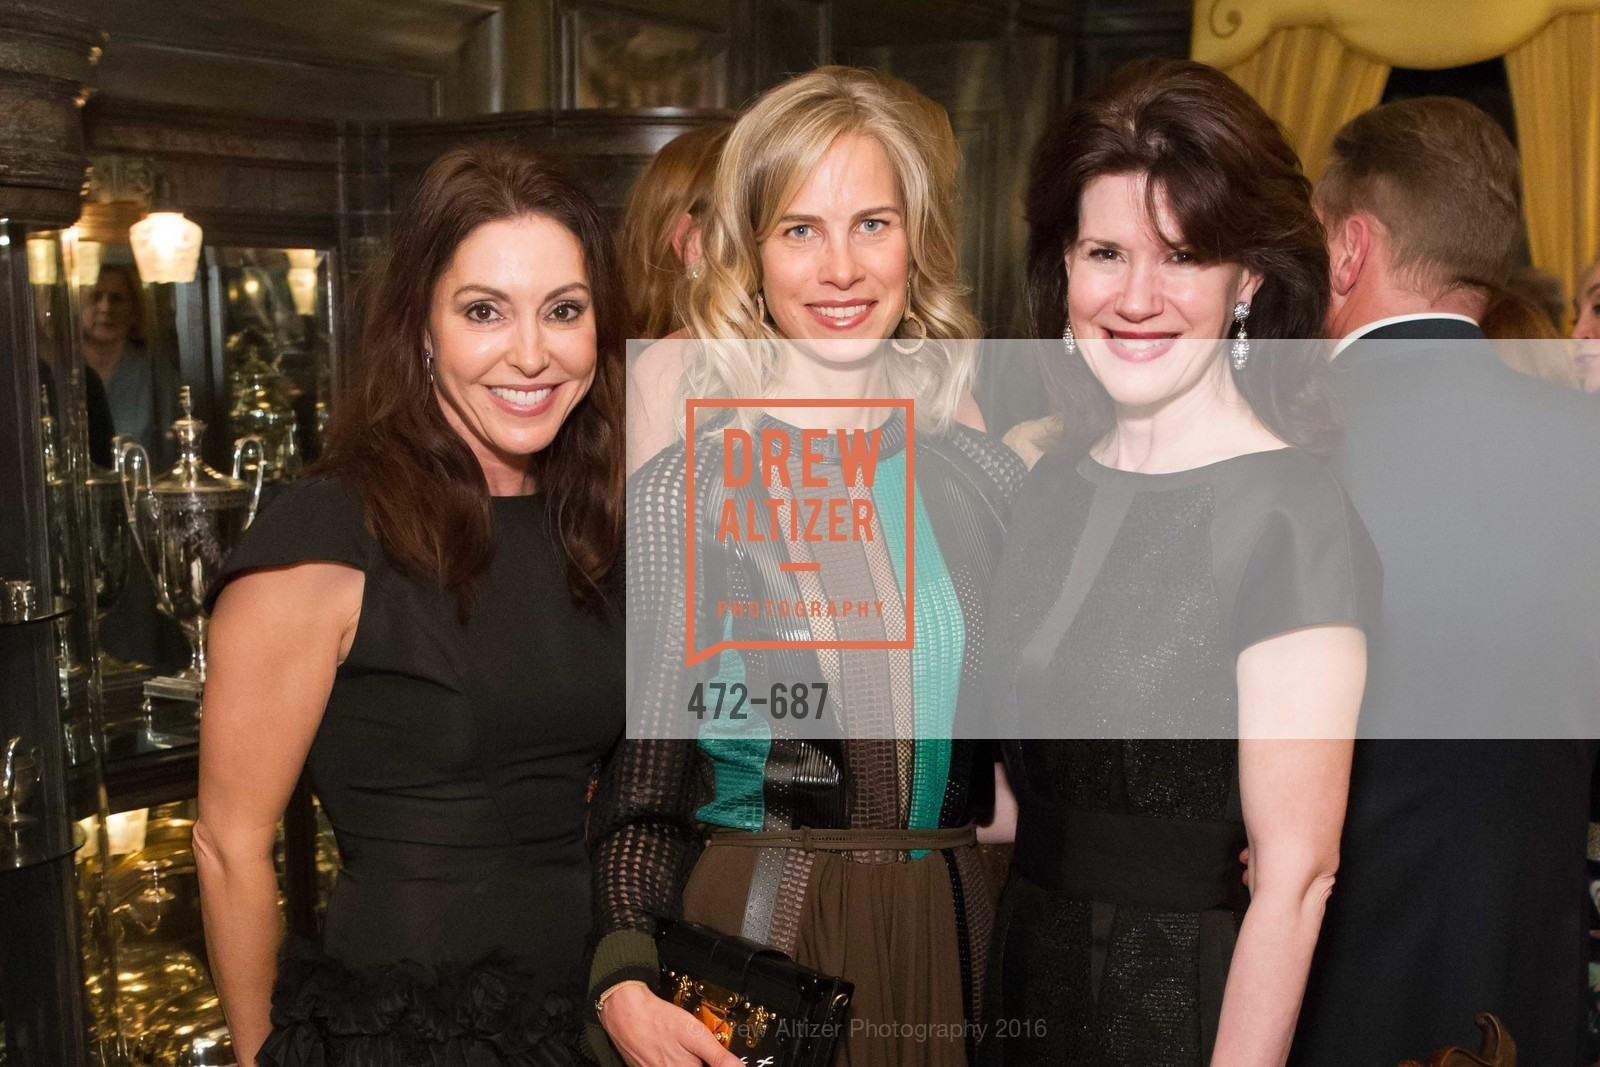 Marybeth Lamotte, Hannah Kavoly, Elaine Mellis, Benefactor Party for the 2016 Ballet Gala, Private Residence, January 14th, 2016,Drew Altizer, Drew Altizer Photography, full-service event agency, private events, San Francisco photographer, photographer California